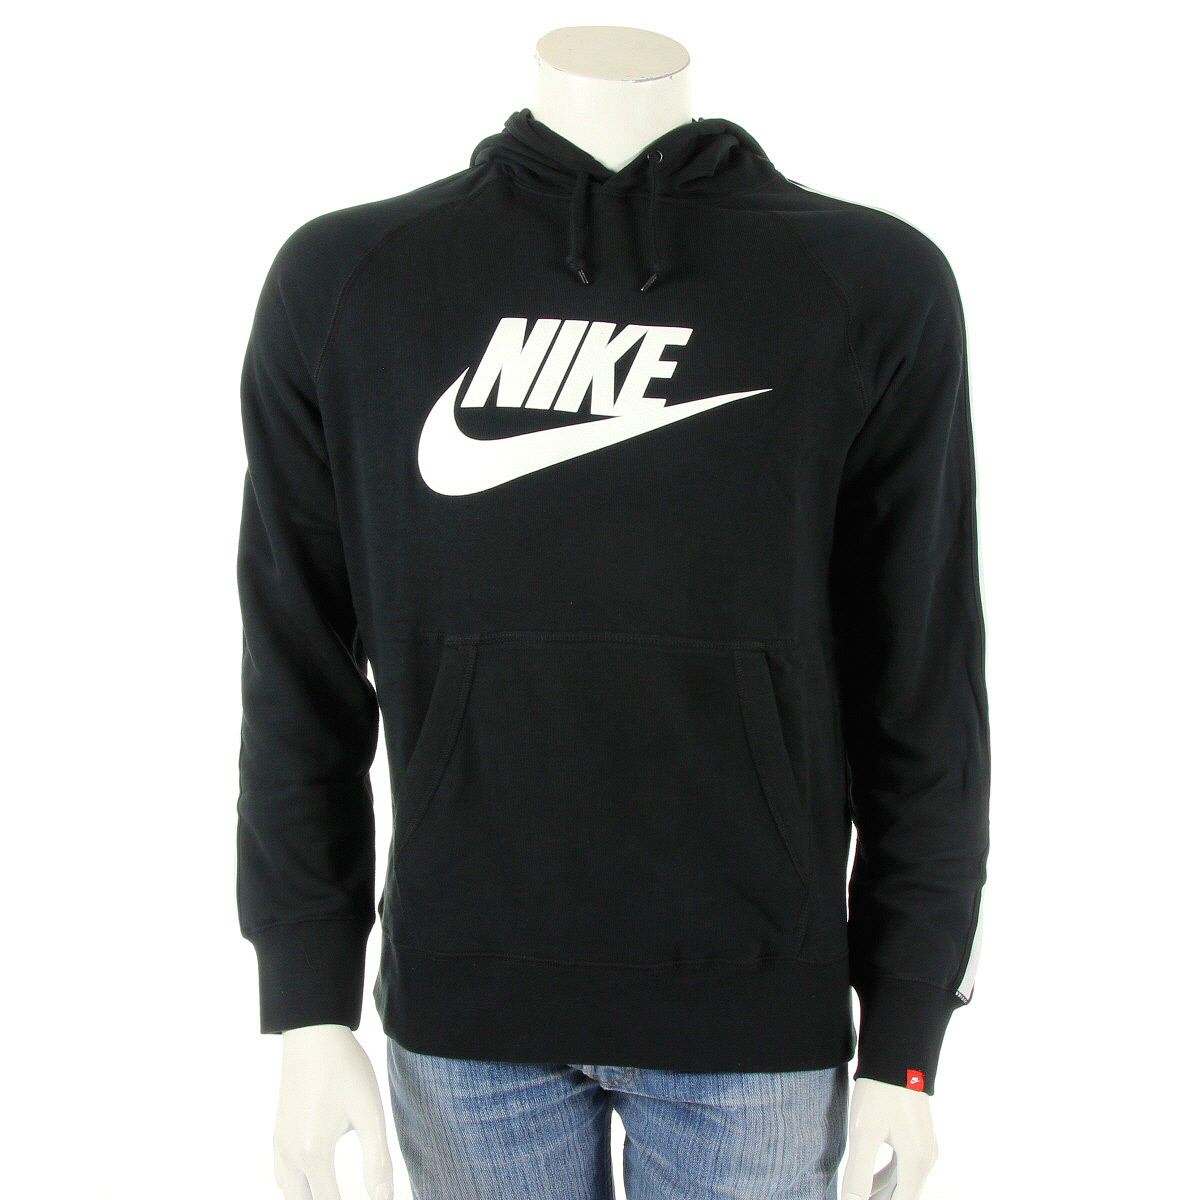 nike sweat hoody pas cher e en vente sur u23. Black Bedroom Furniture Sets. Home Design Ideas